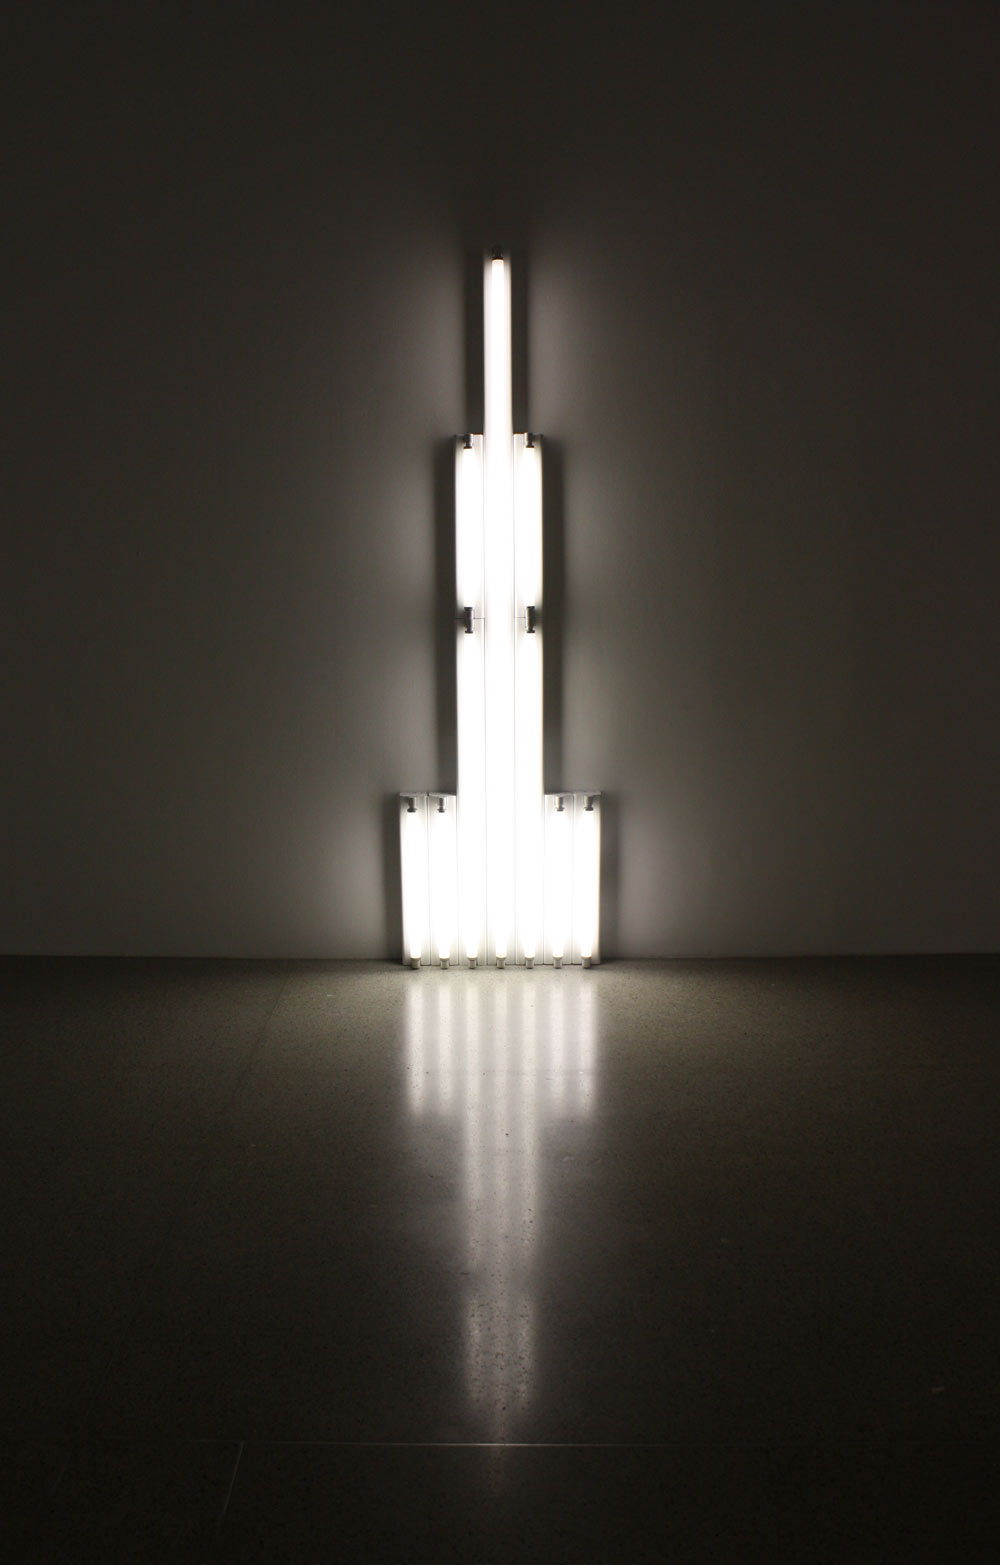 Dan Flavin, Monument for V.Tatlin, 1964